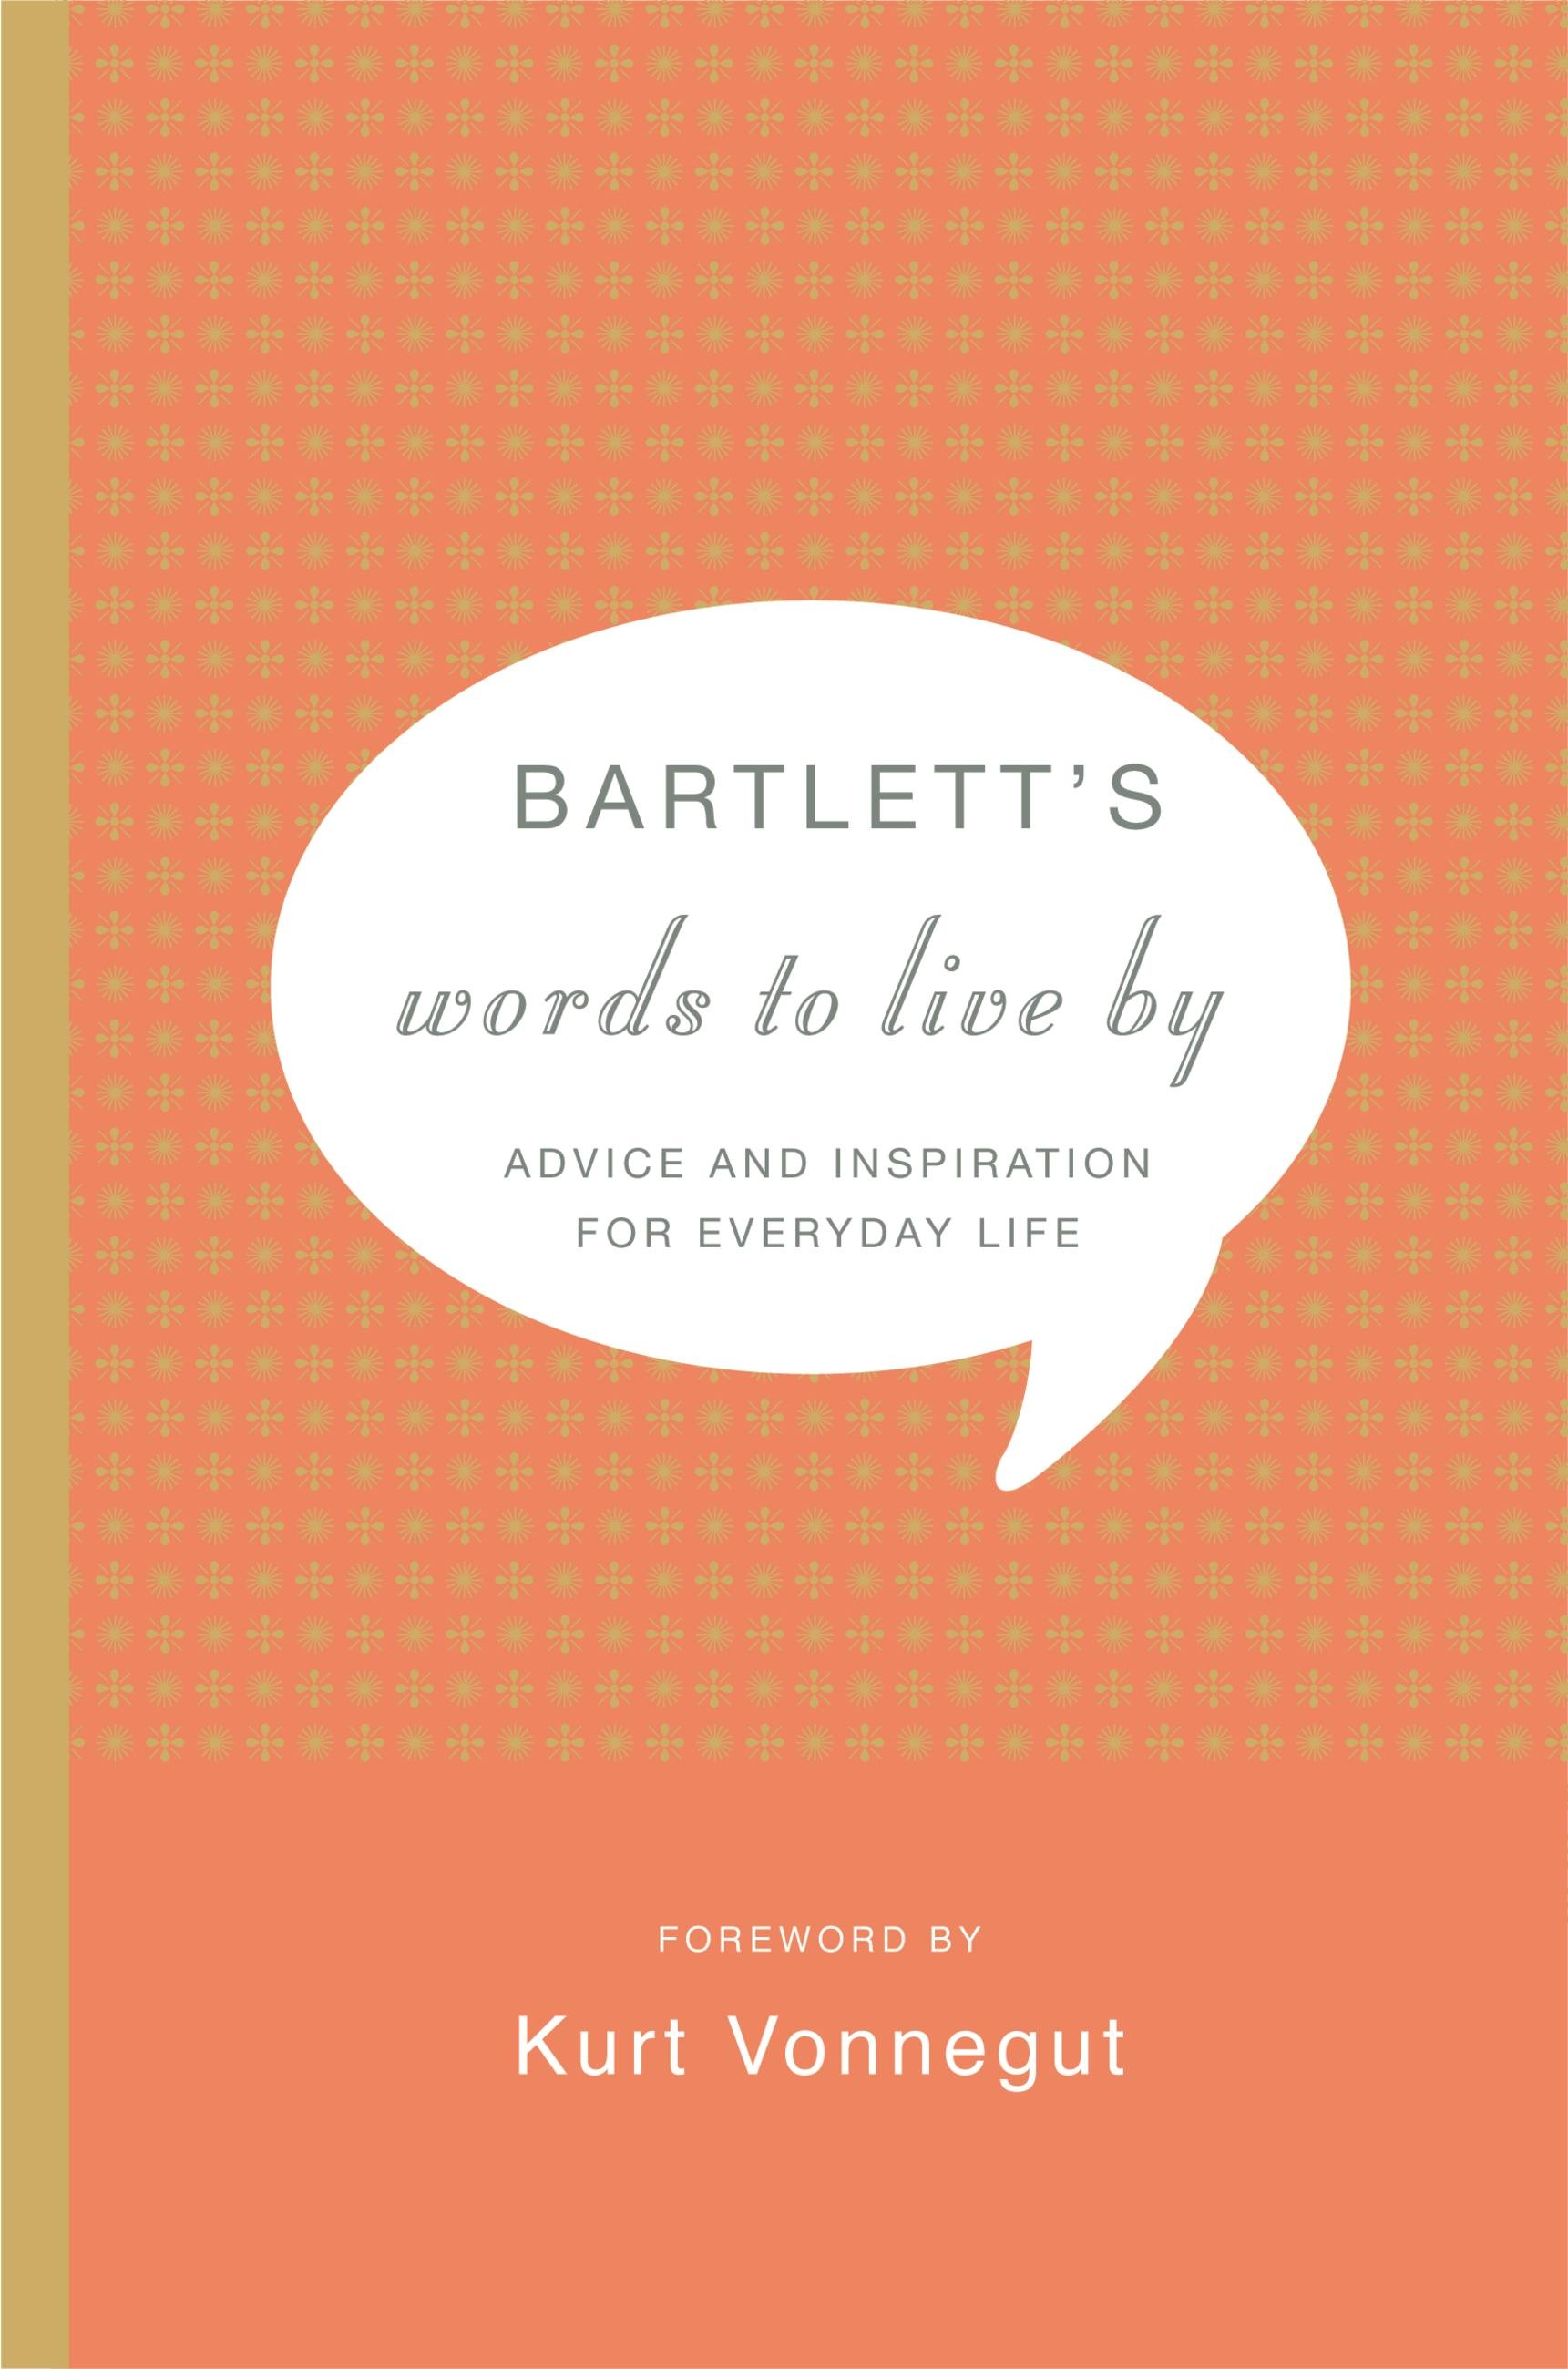 Bartlett's Words to Live By